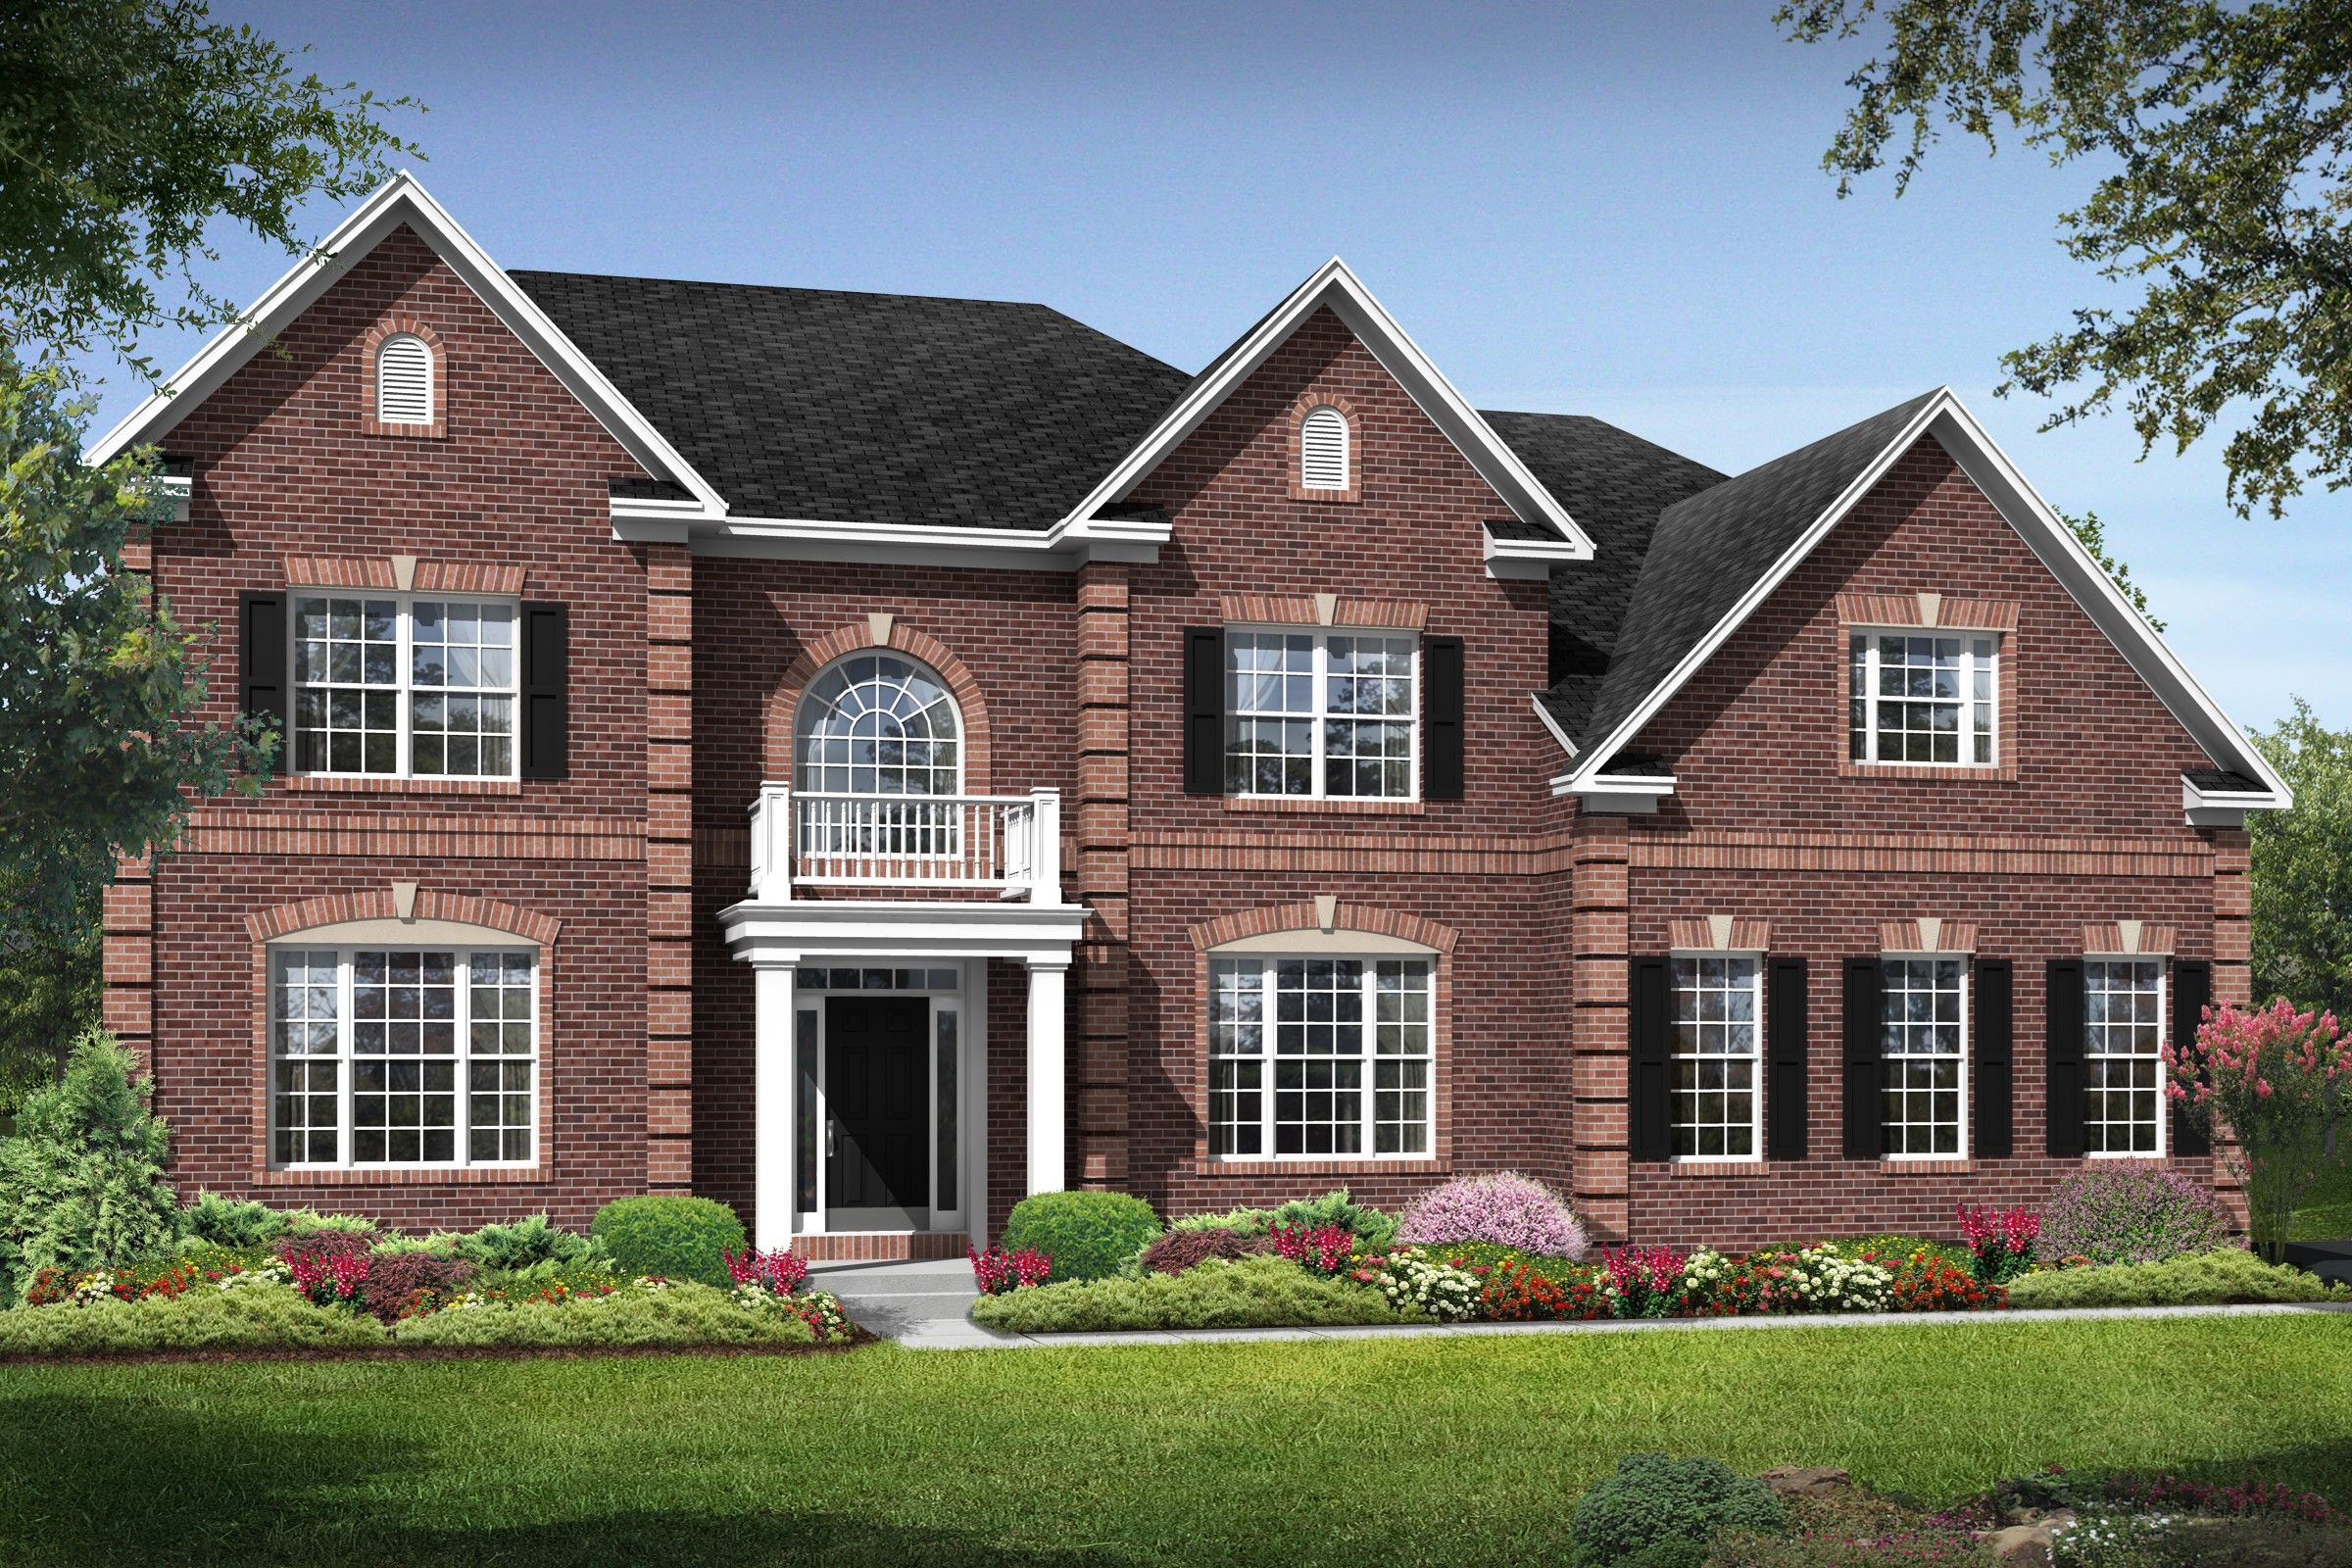 Single Family for Active at The Estates At Cedar Lane - Manhattan 101 Patterson Court Middletown, Delaware 19709 United States